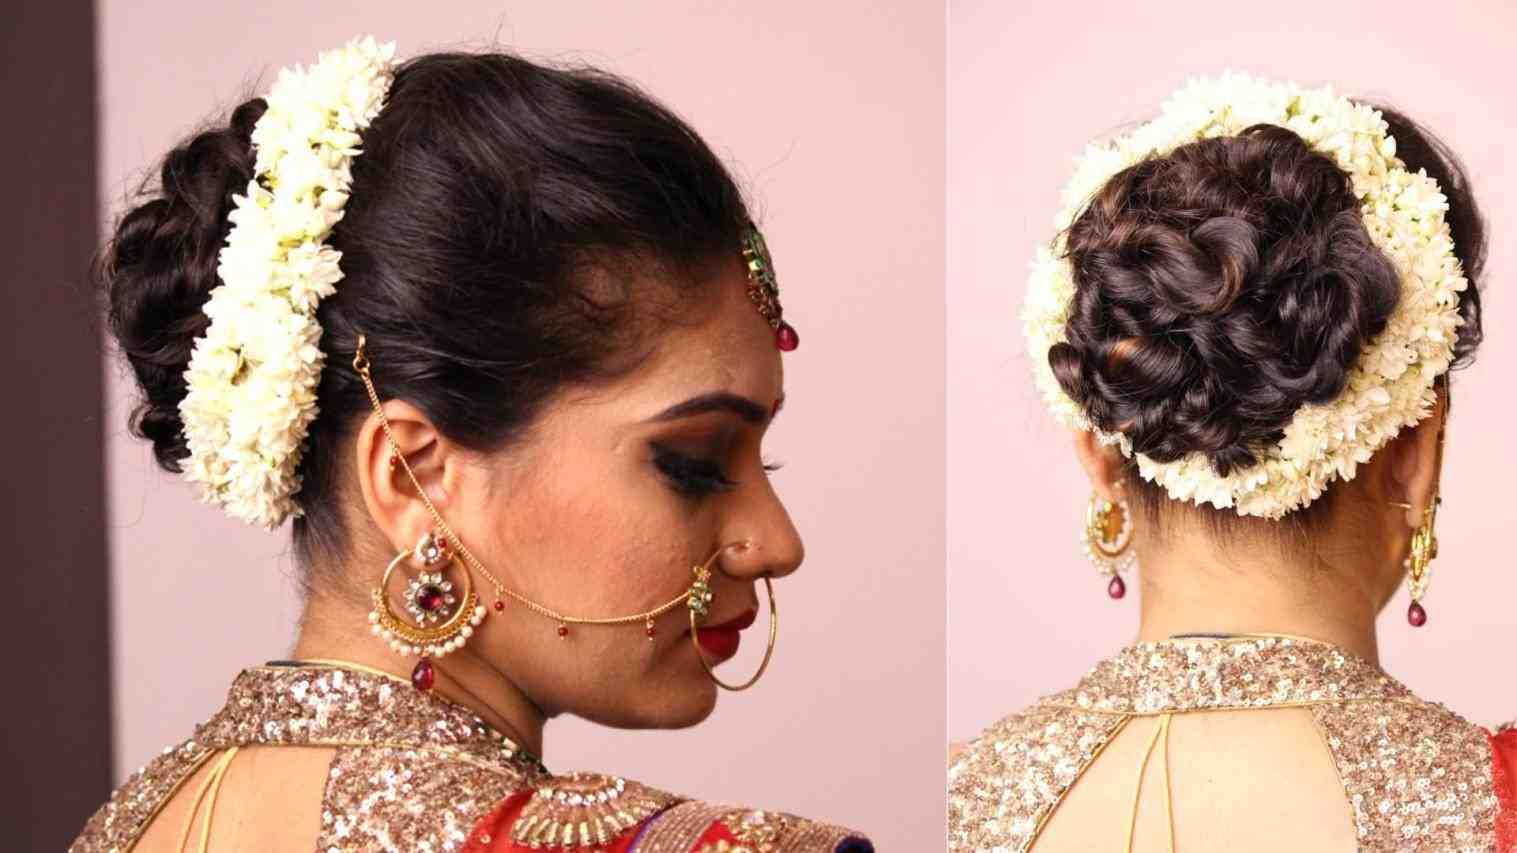 Messy Bun Hairstyle For Indian Wedding Hair Stylist And Models